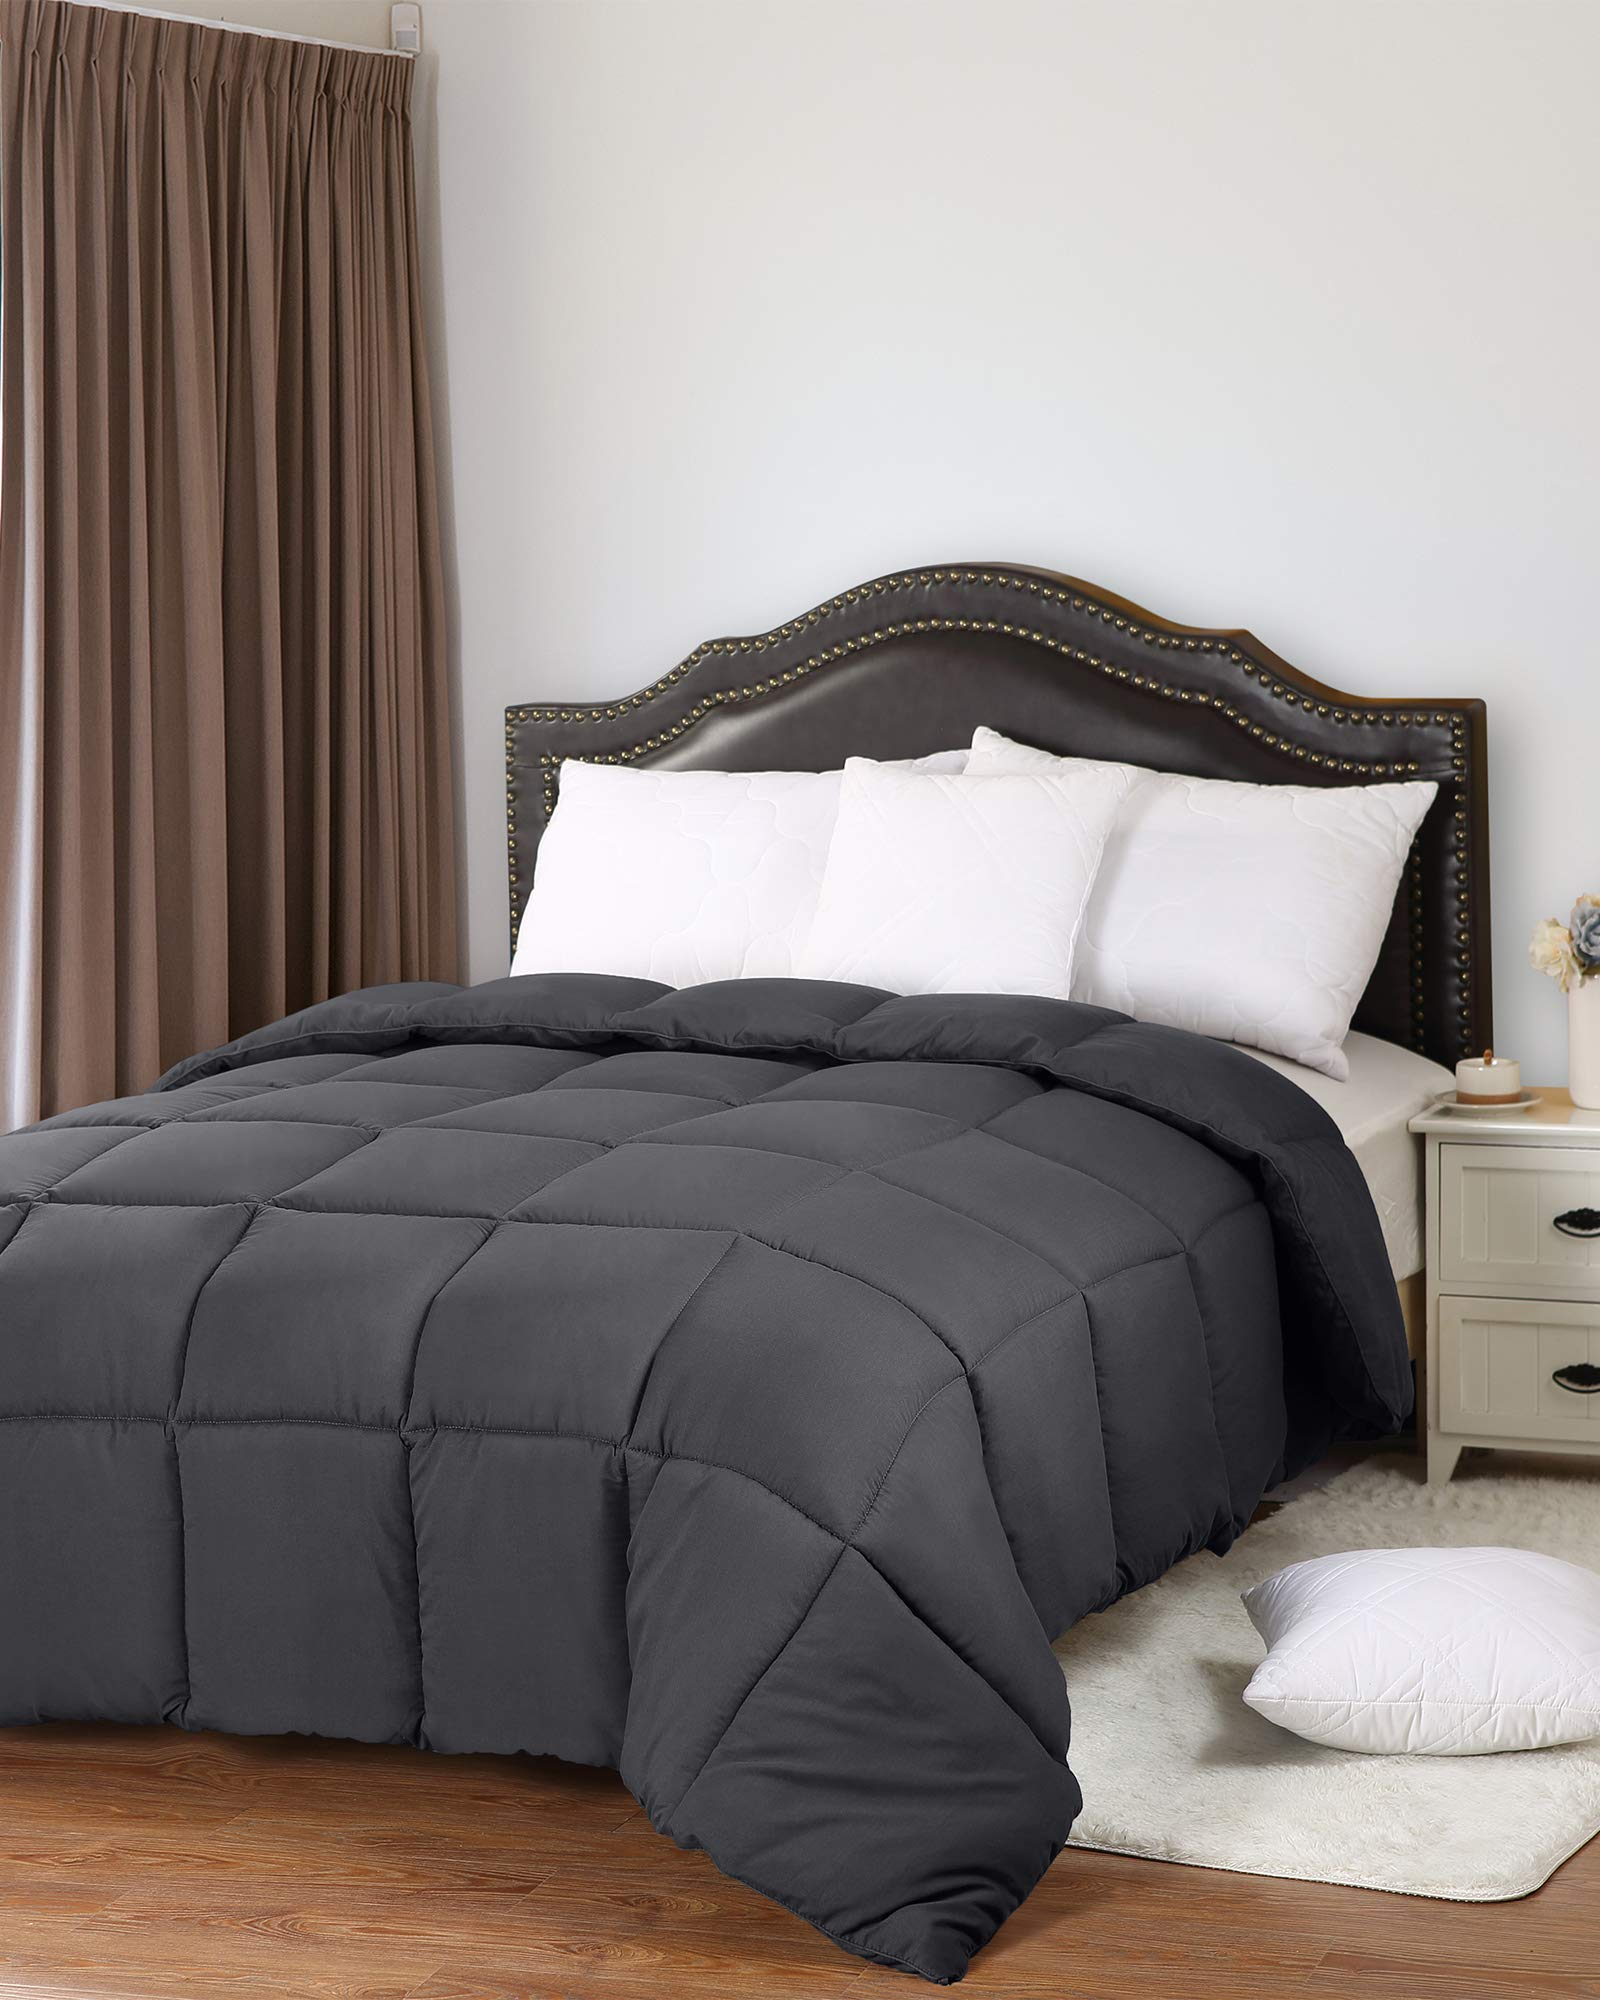 Utopia Bedding All Season 250 GSM Comforter - Soft Down Alternative Comforter - Plush Siliconized Fiberfill Duvet Insert - Box Stitched (Full/Queen, Grey) by Utopia Bedding (Image #2)